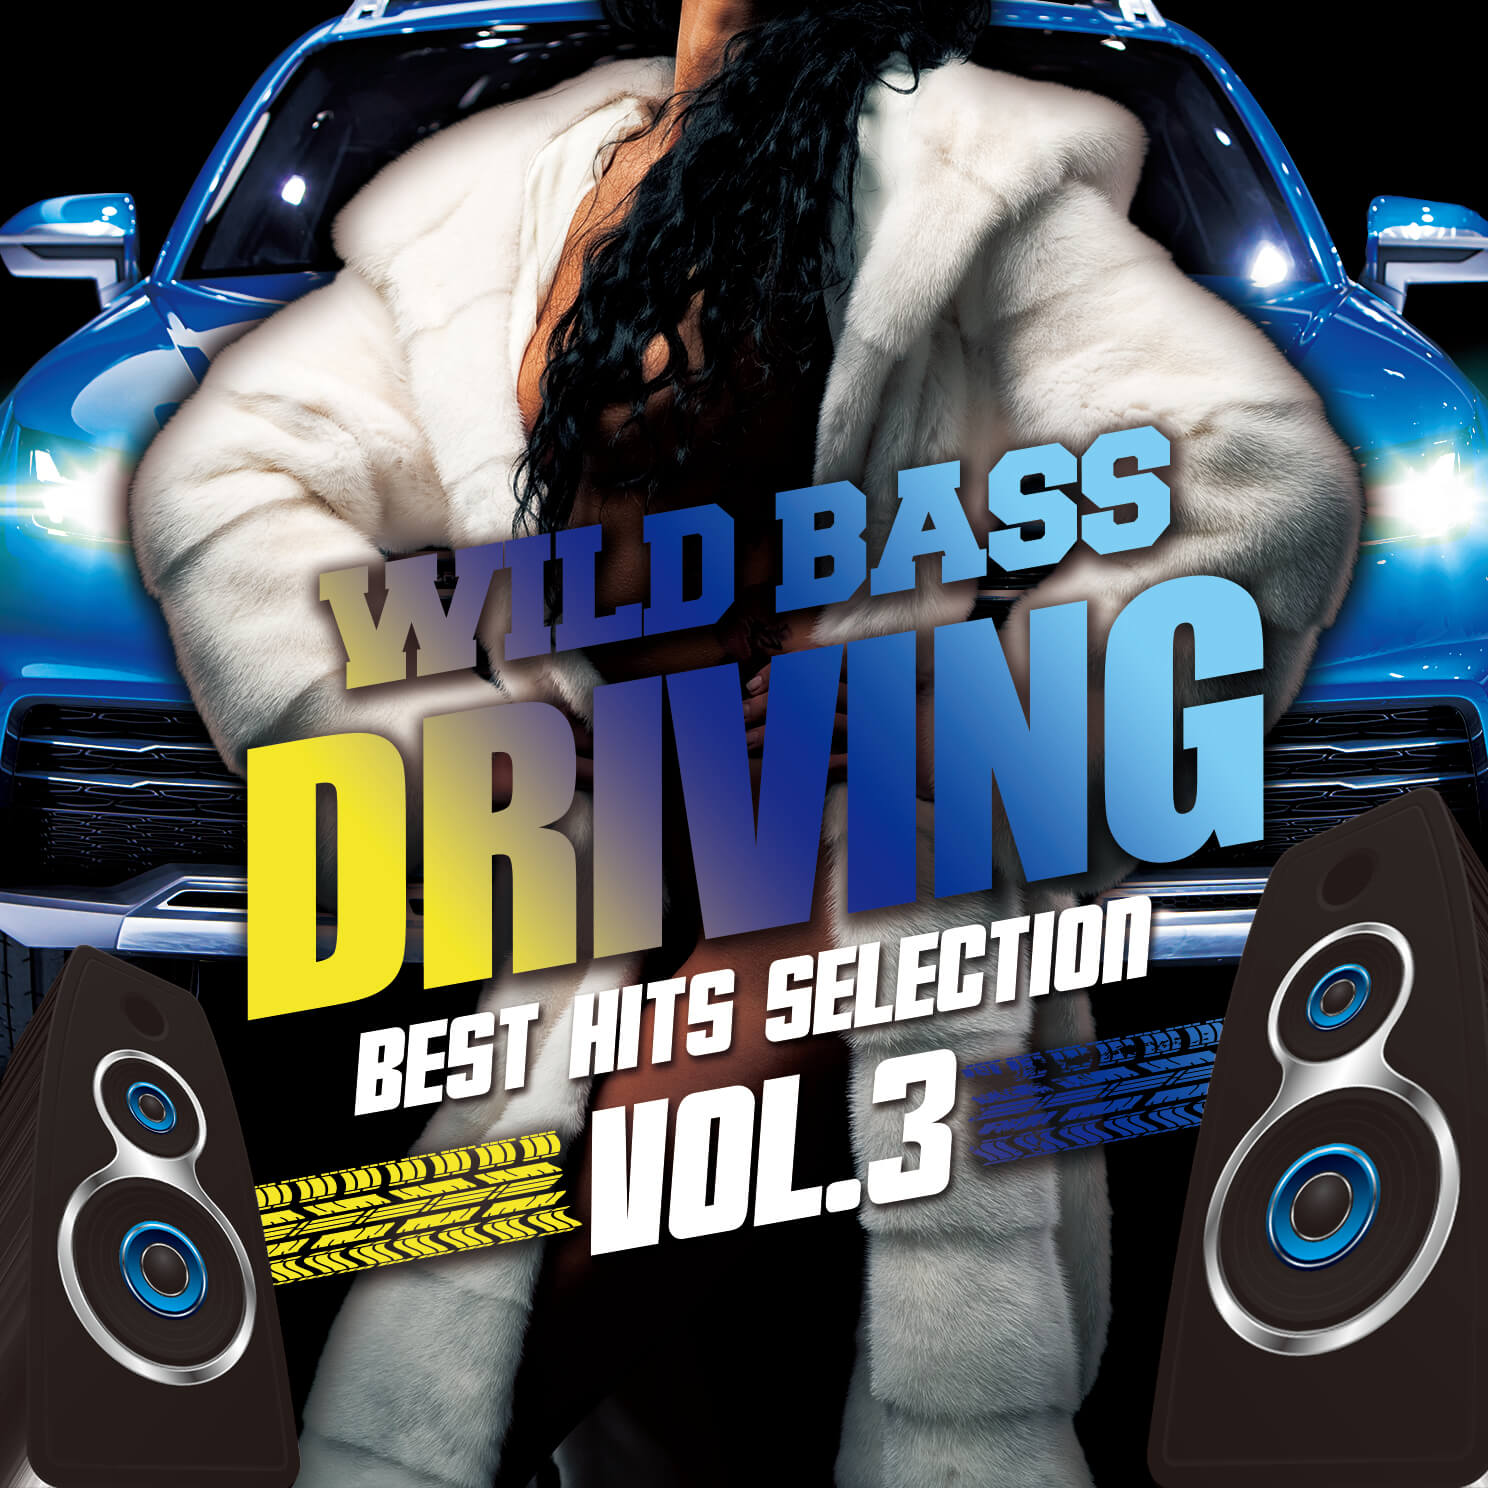 WILD BASS DRIVING -Best Hits Selection Vol.3-